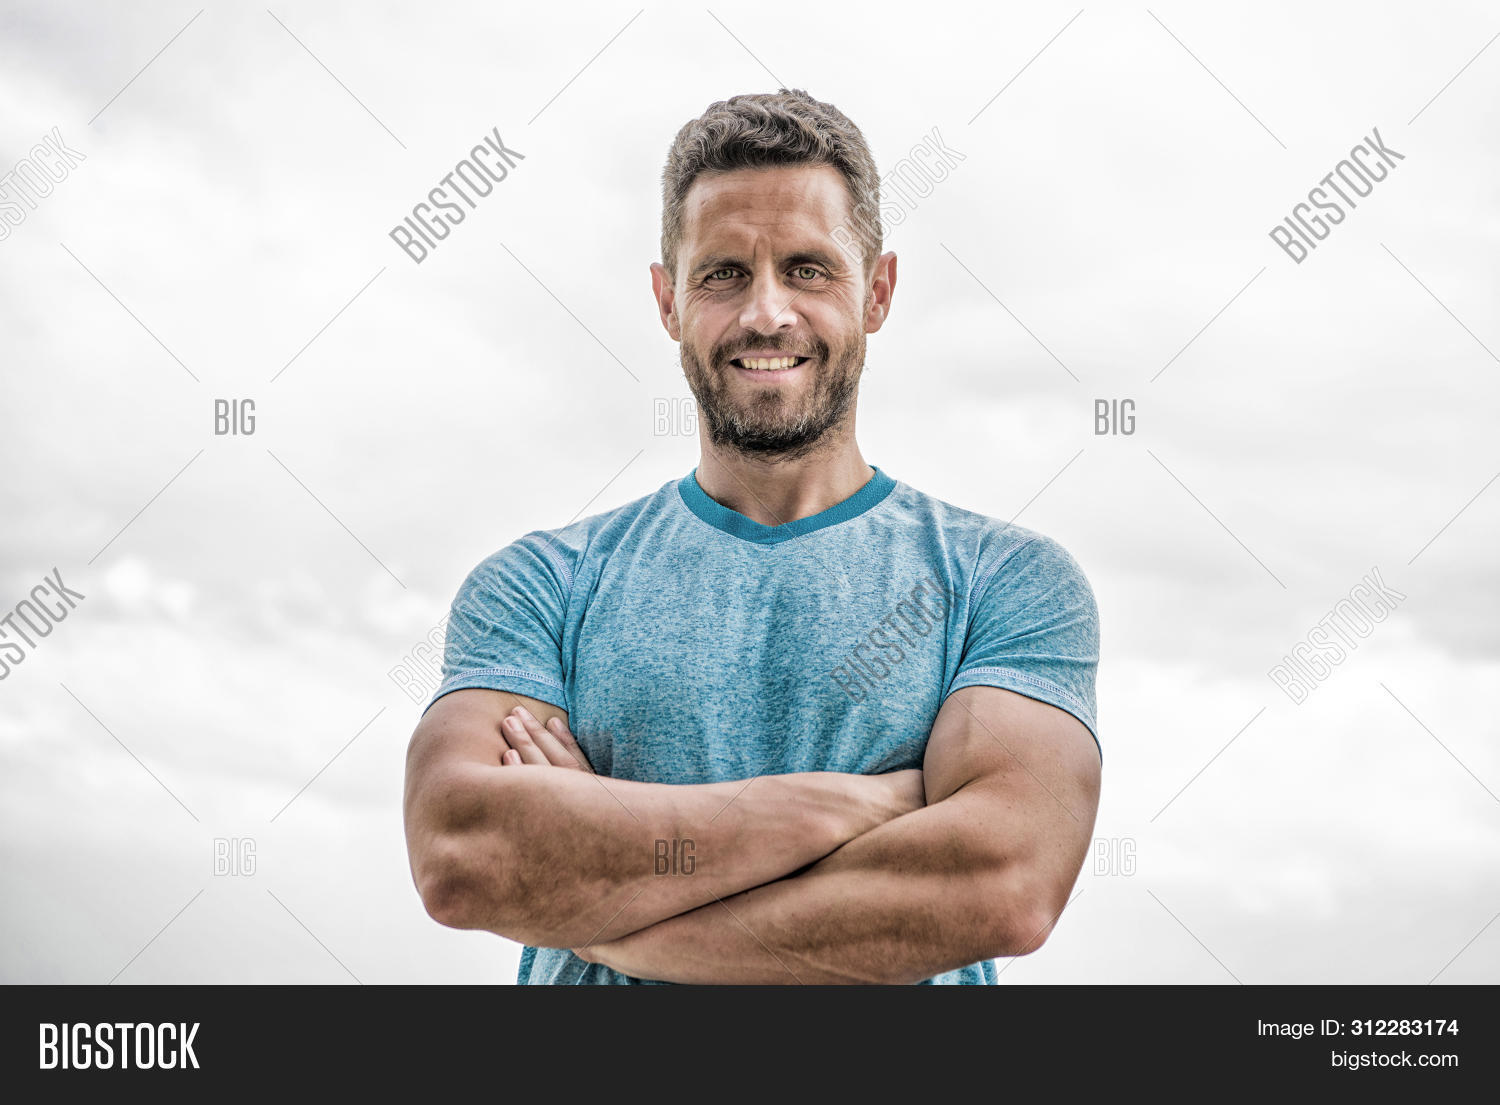 Muscular Male With Beard. Happy Man Isolated On White. Sportsman With Athletic Body. Coach In Fitnes